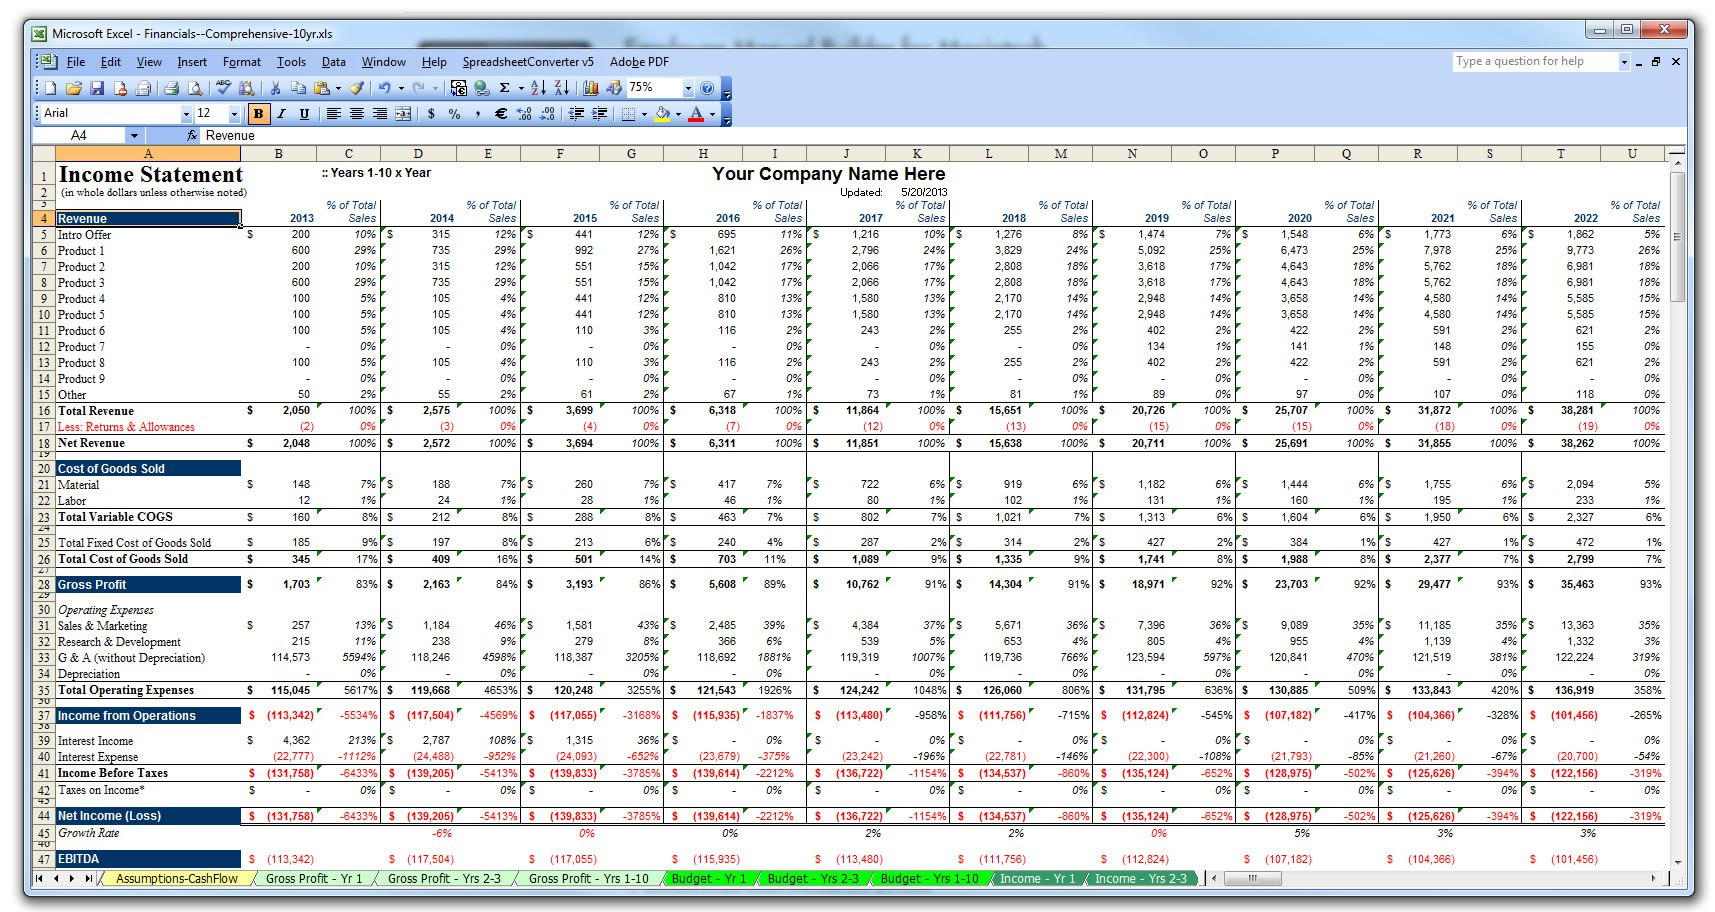 Financial Planning Spreadsheet Excel Free Regarding Financial Planner Excel Onwe Bioinnova On Retirement Planning